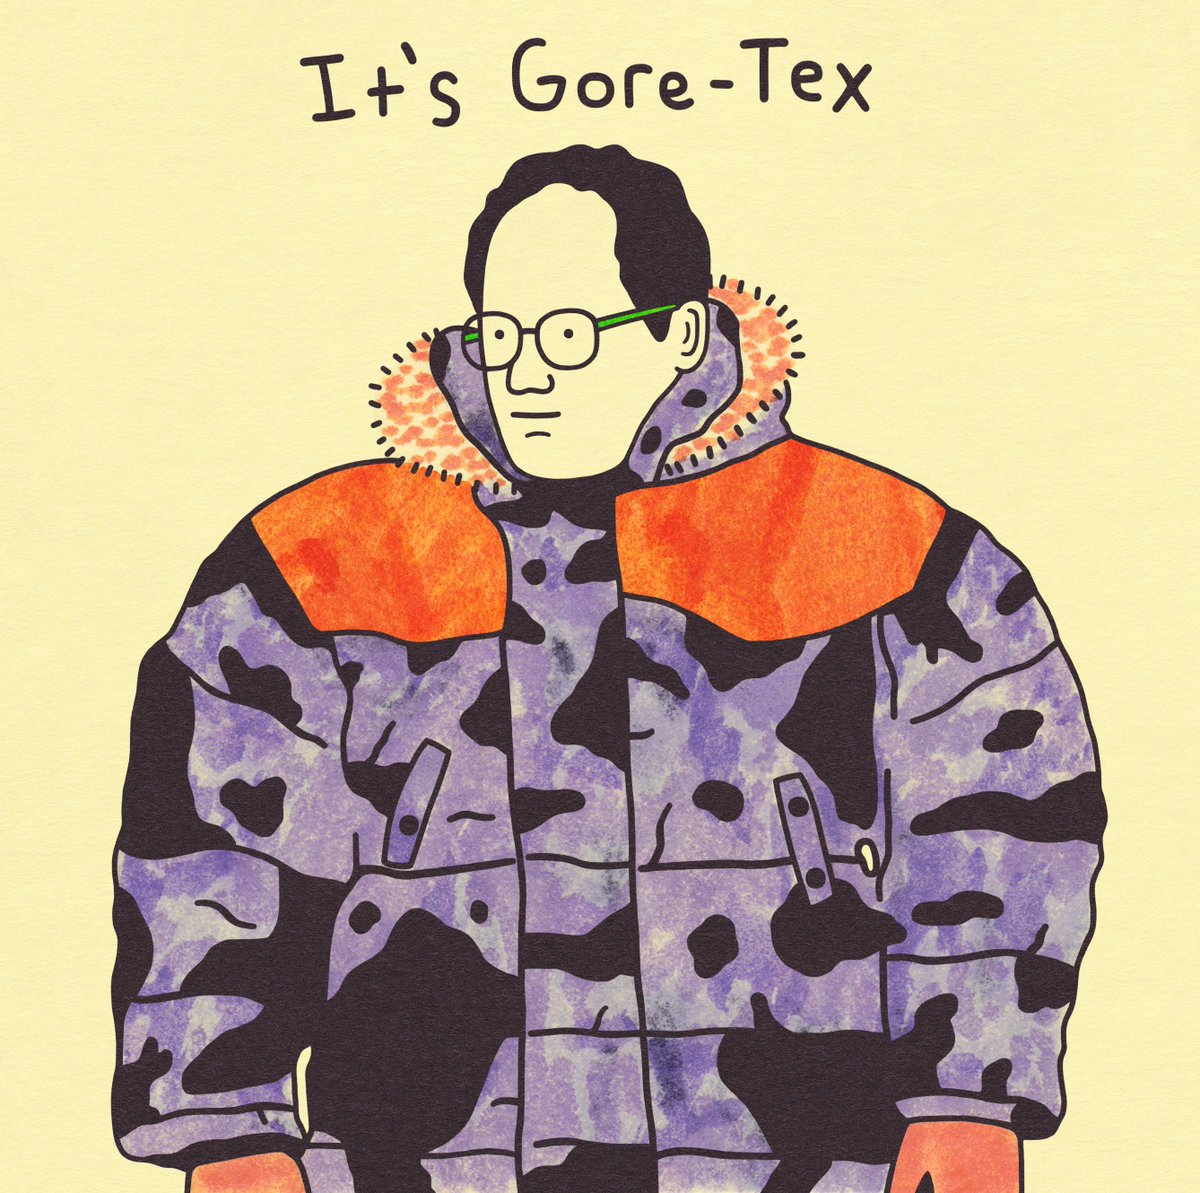 Gangster Doodles On Twitter George Costanza Goretex